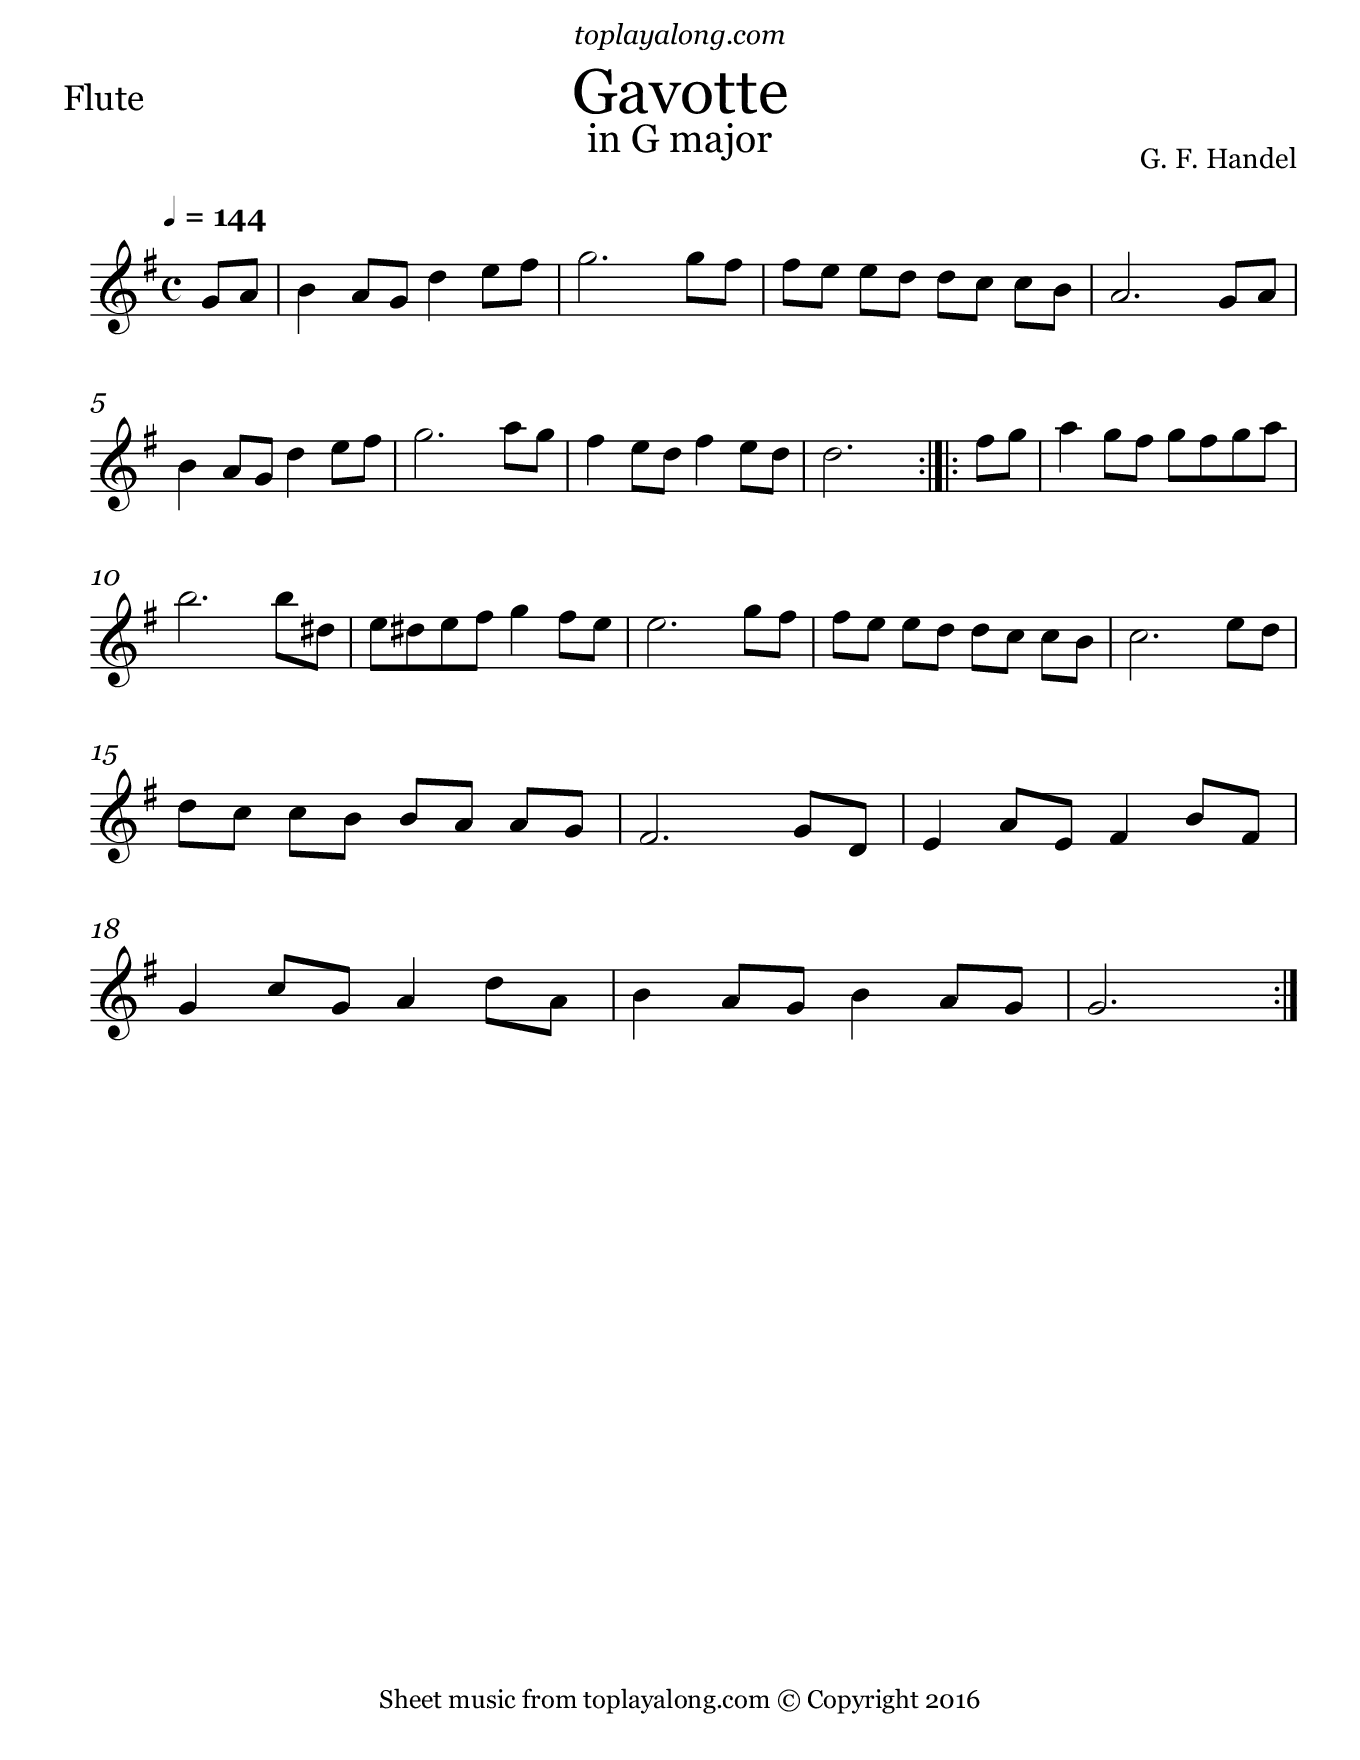 Gavotte in G major by Handel. Sheet music for Flute, page 1.